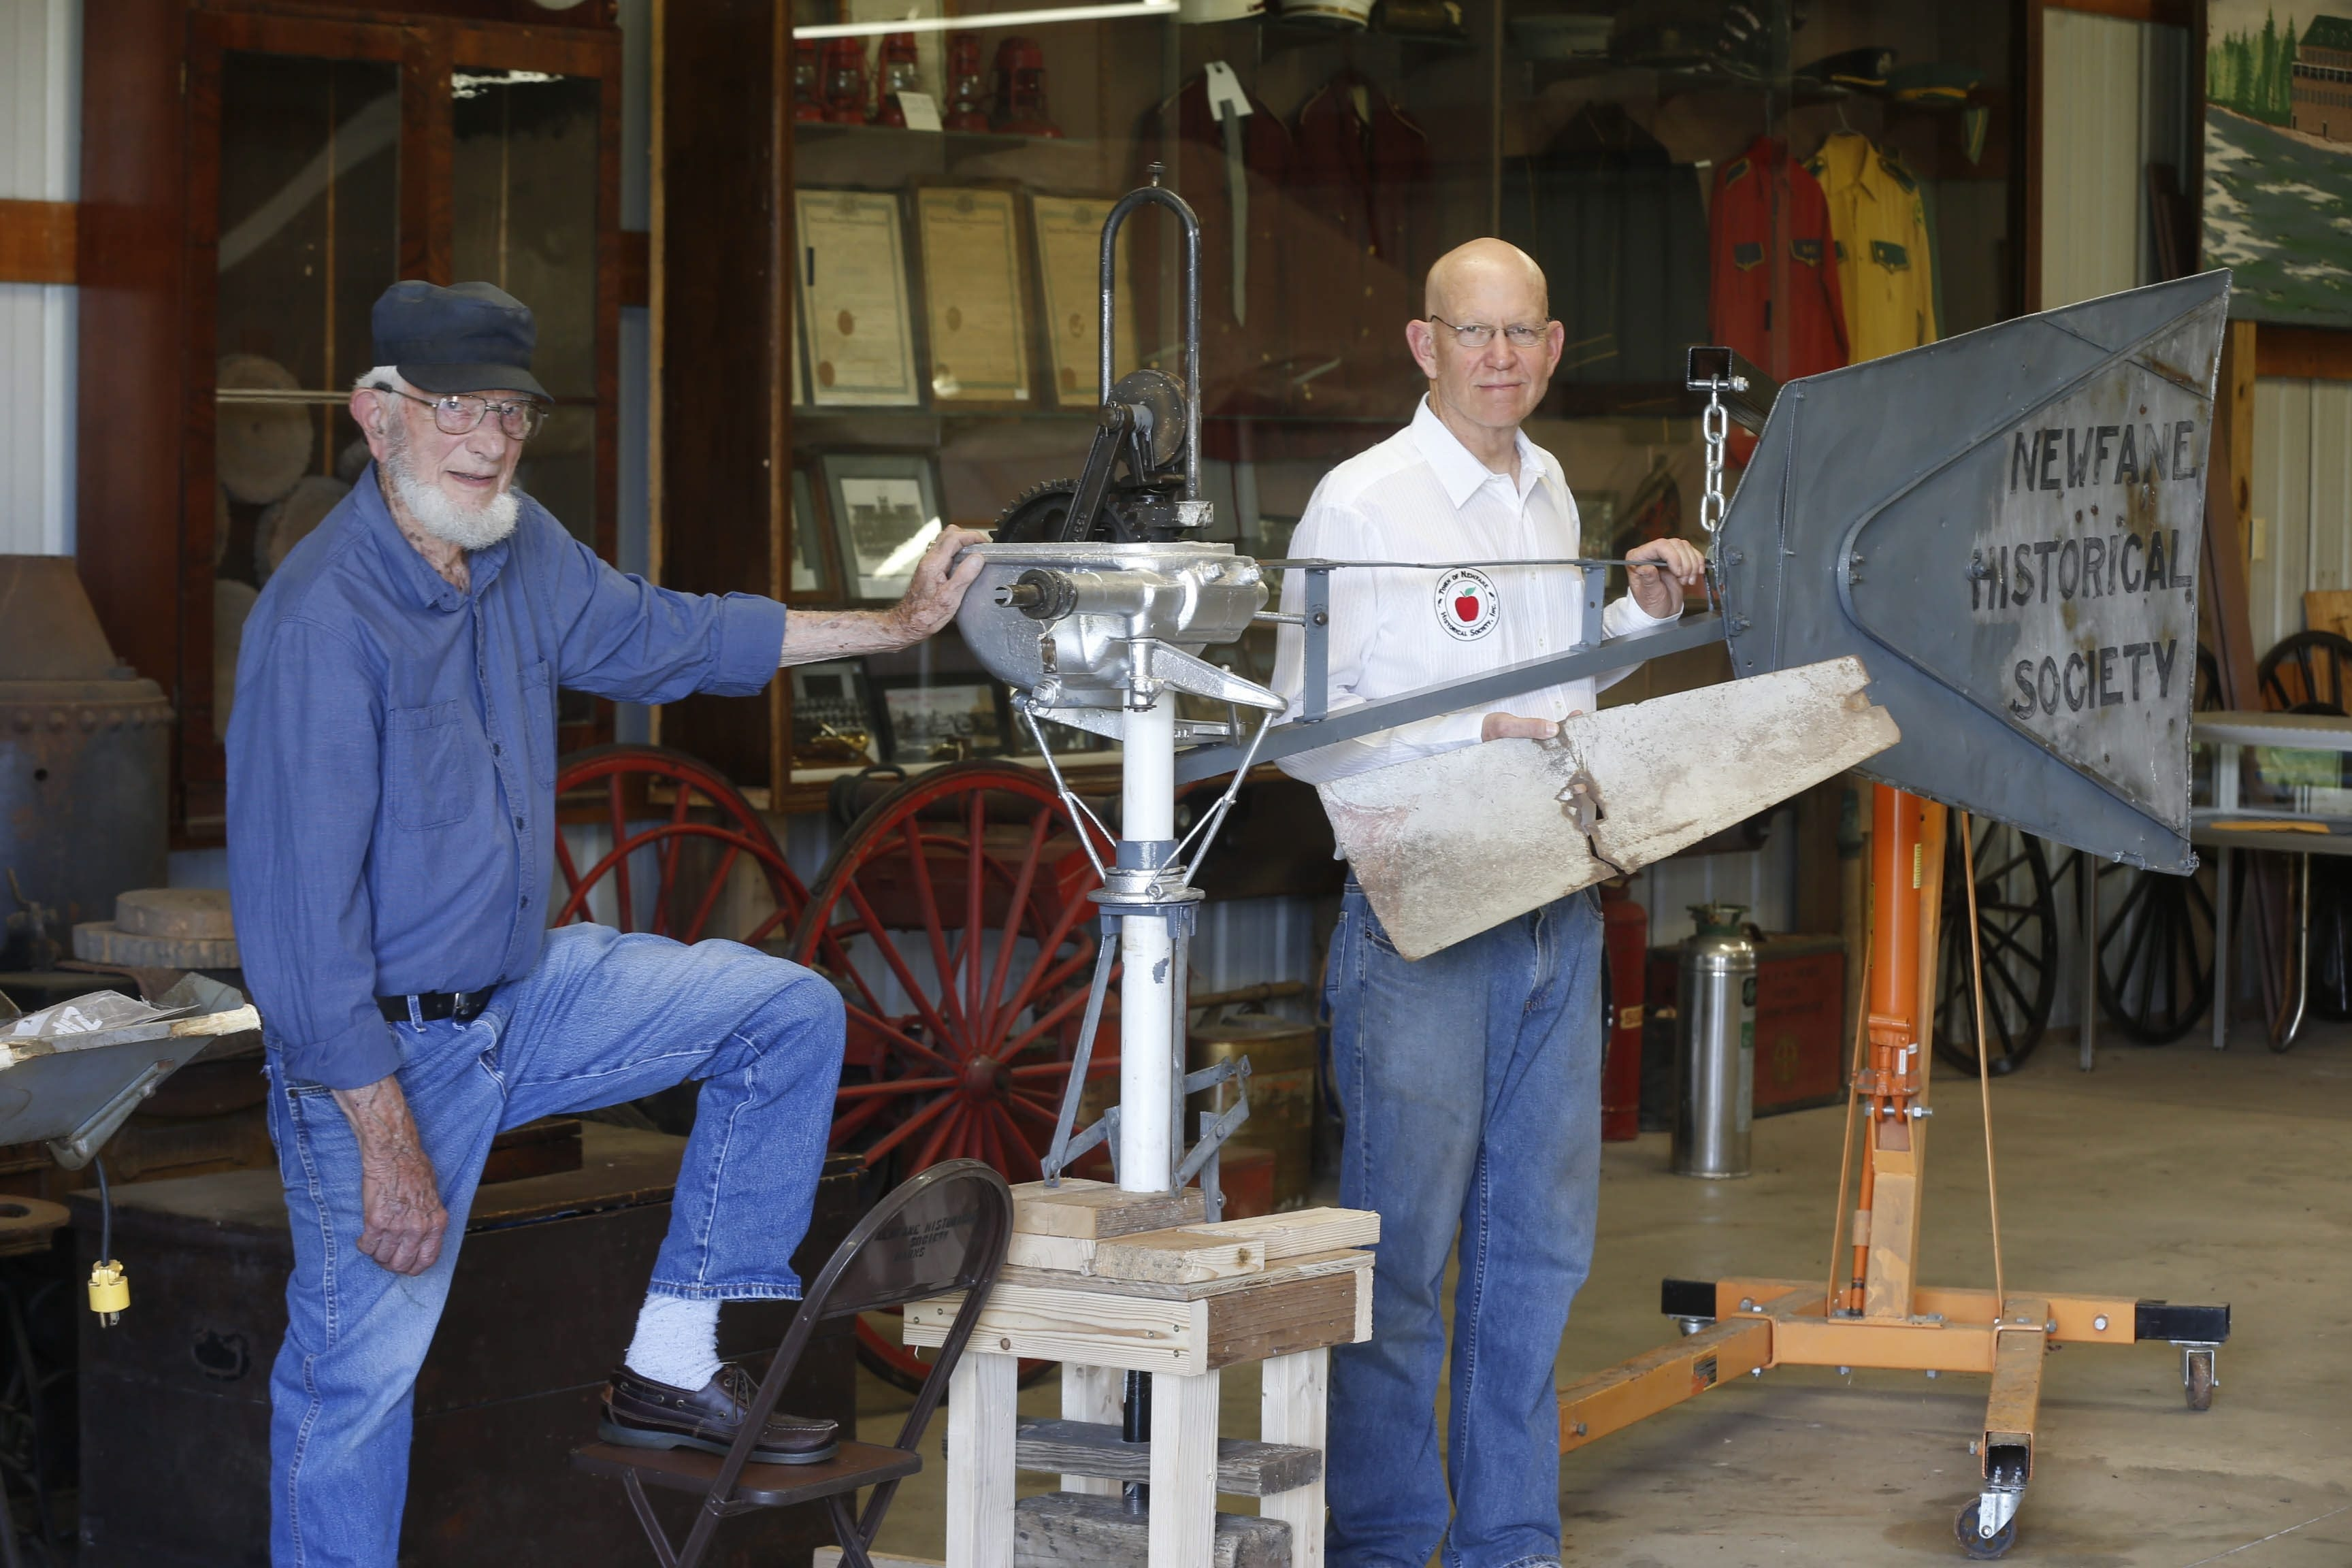 Sam Clogston, left, and Bill Neidlinger are in the process of restoring an old Aeromotor Water Pumping Windmill for the Newfane Historical Society. They have been working on the project off and on for almost a year.